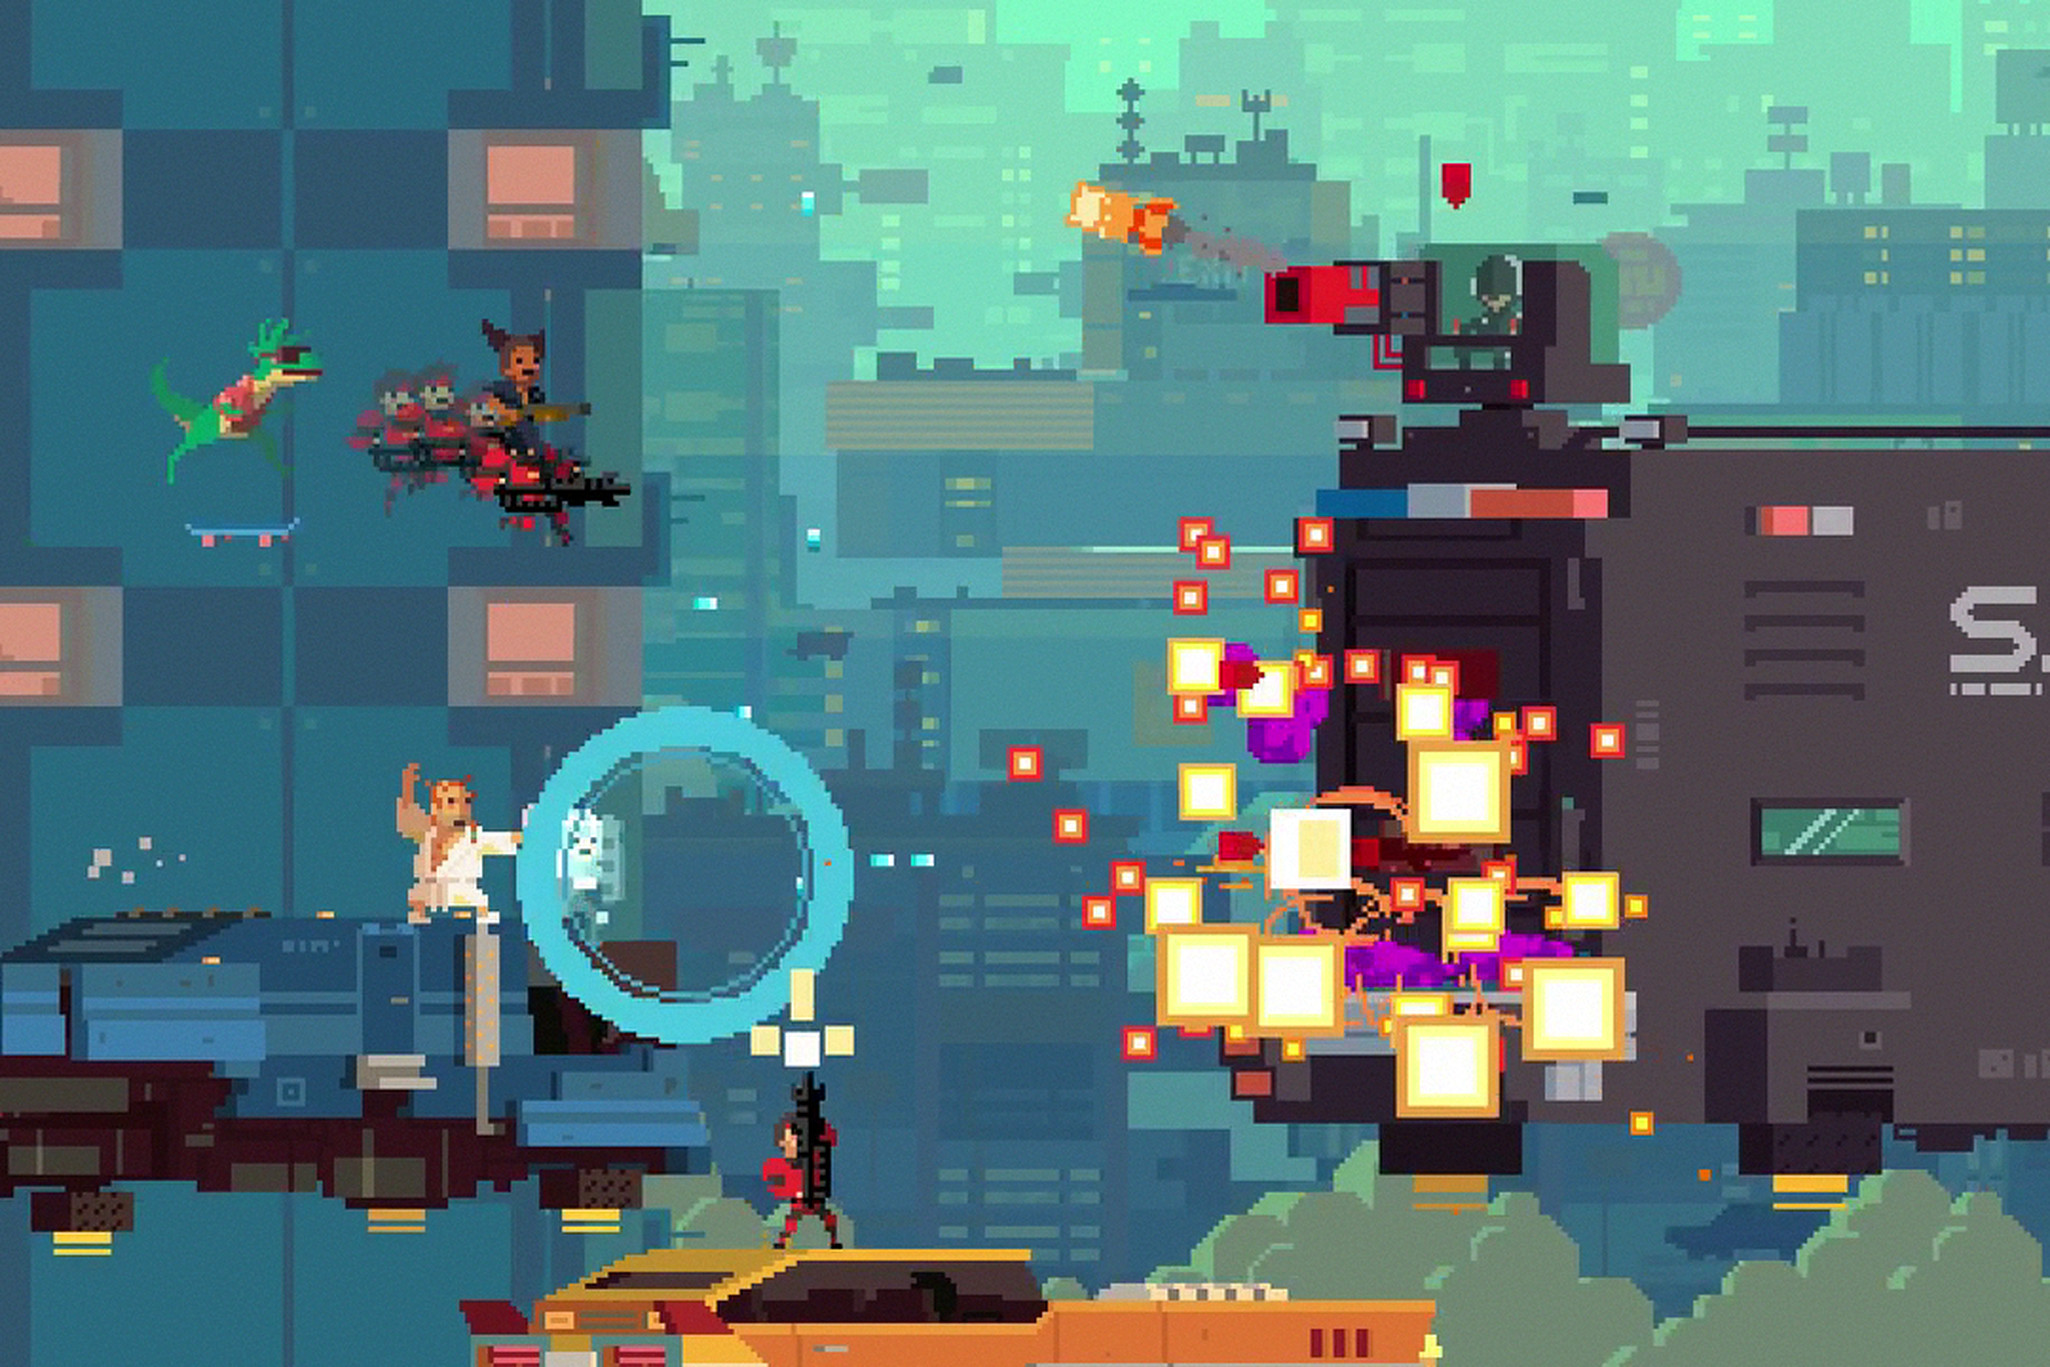 Pixel art games aren't retro, they're the future | The Verge